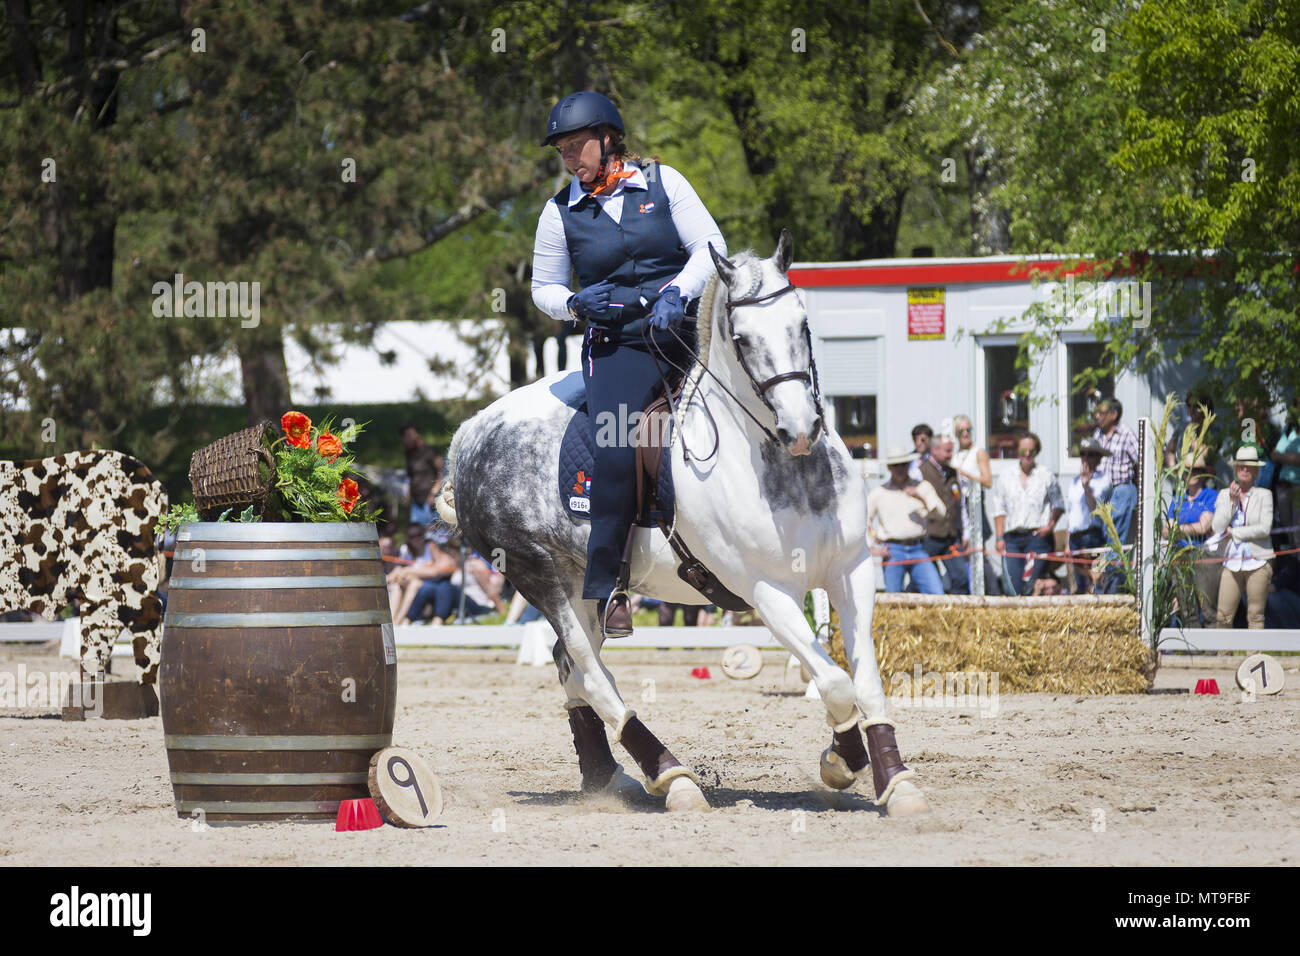 Kelly van Gent in a gallop on a Pimto gray horse during a competiton. EM 2016, Munich, Bavaria - Stock Image